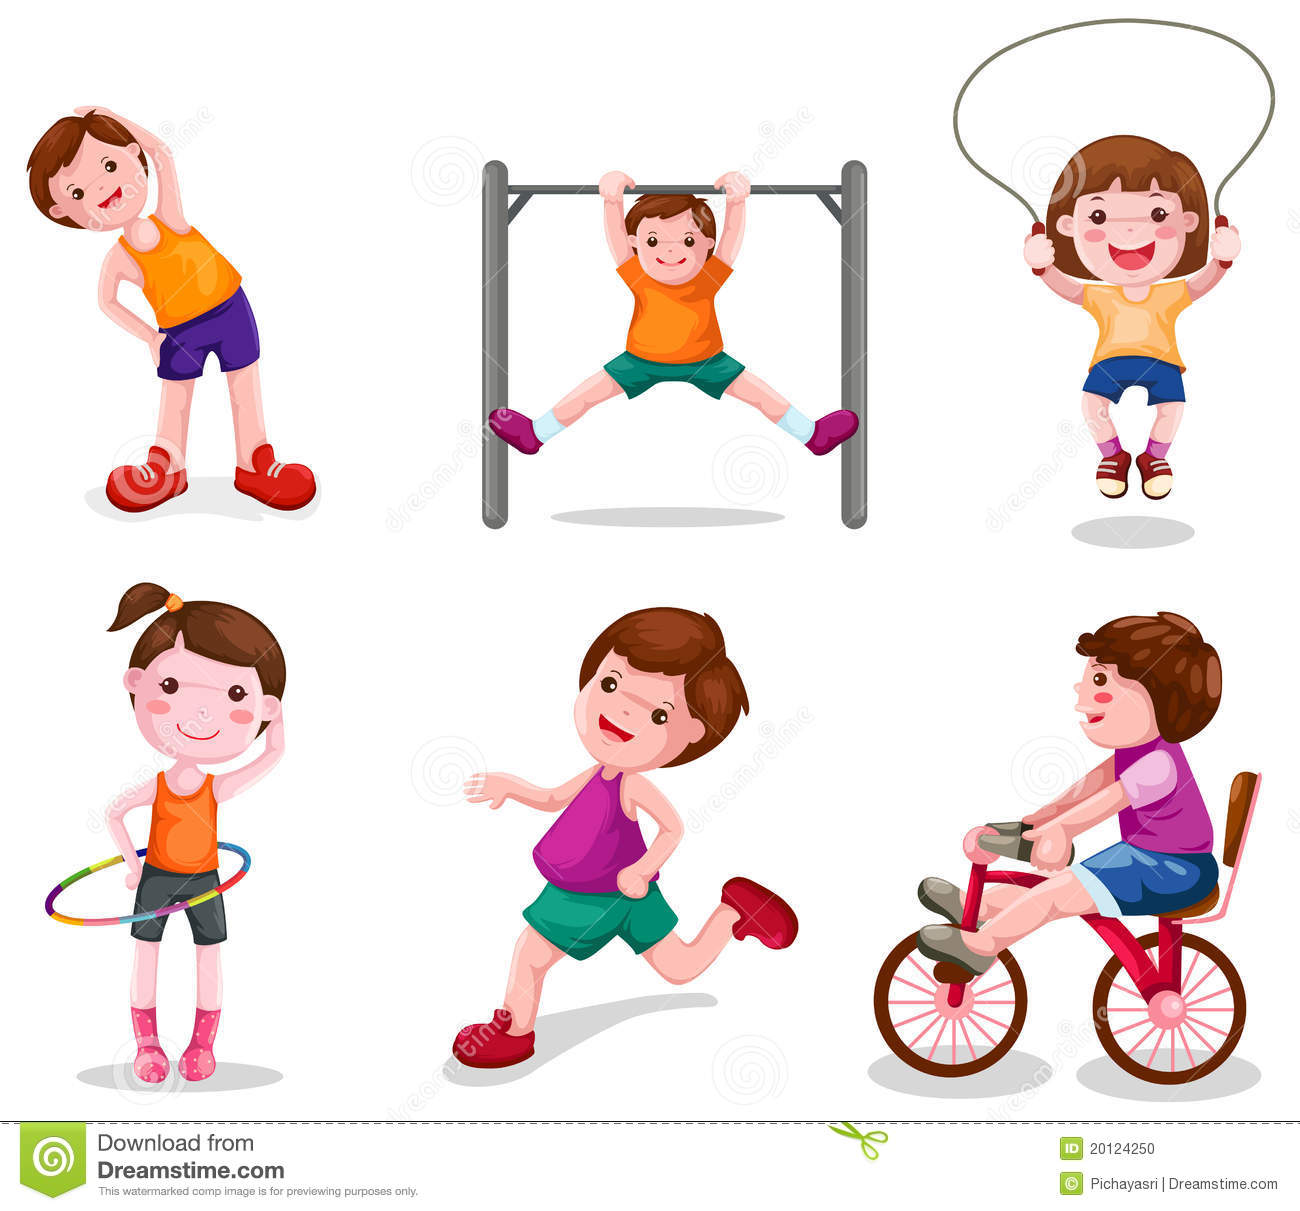 Activity Time Clipart - Clipart Kid